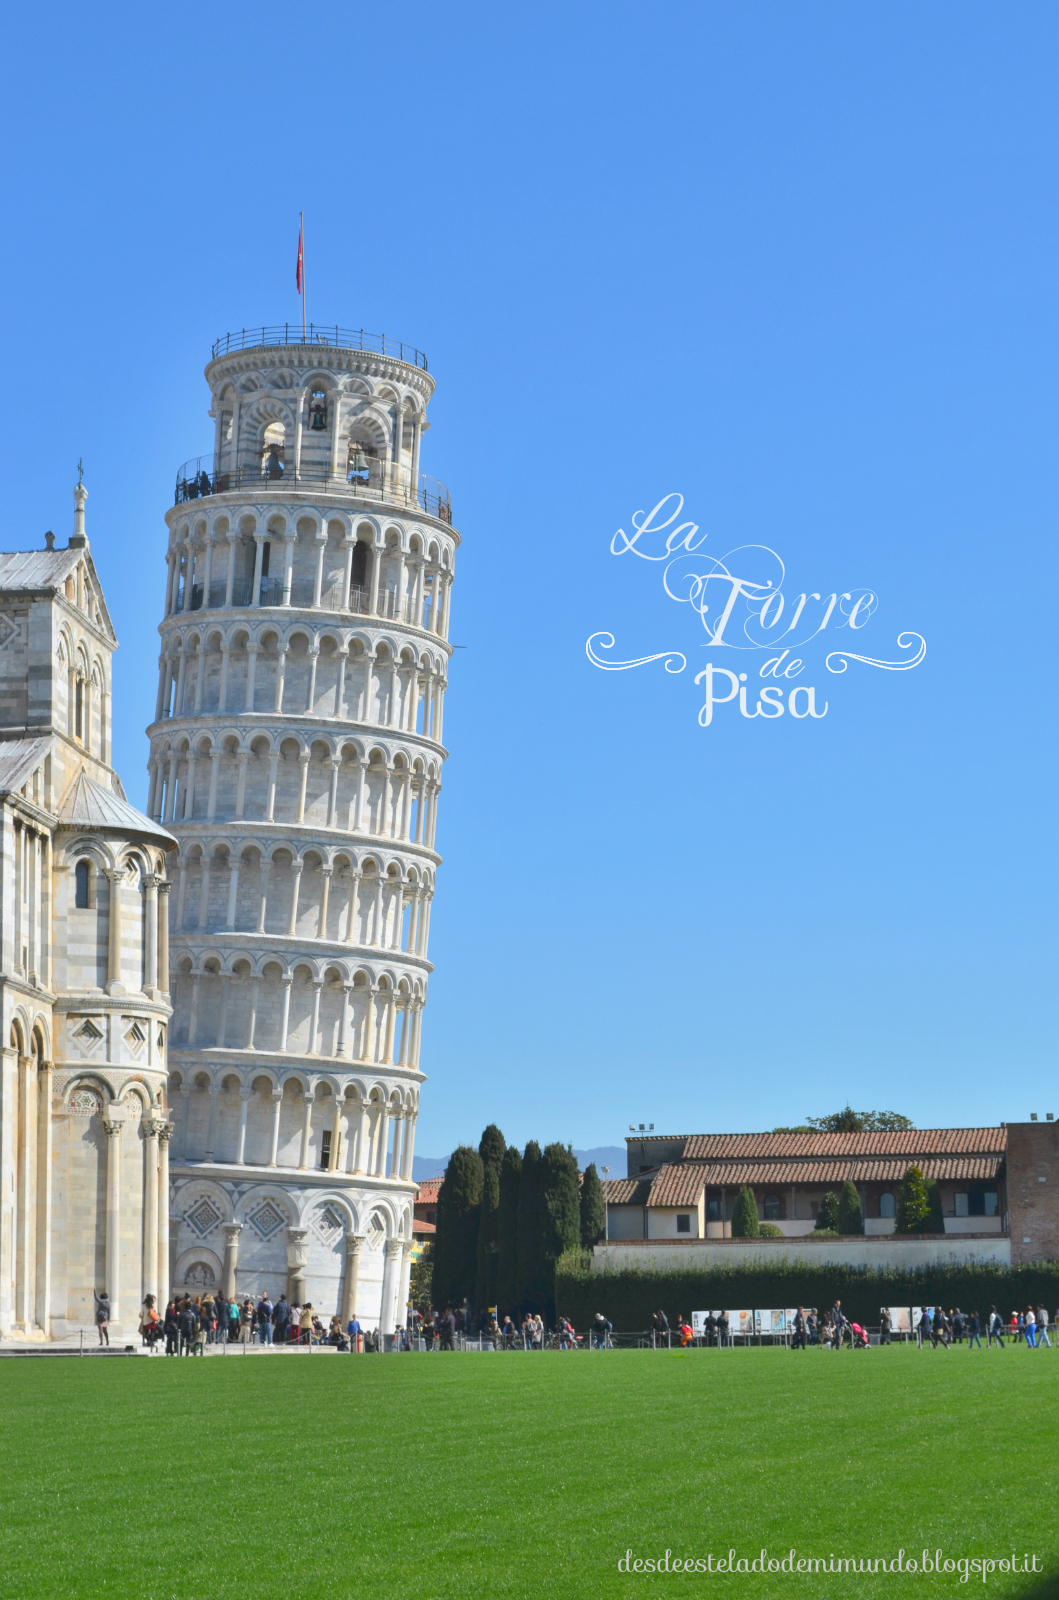 pisa tower italy desdeesteladodemimundo.blogspot.it